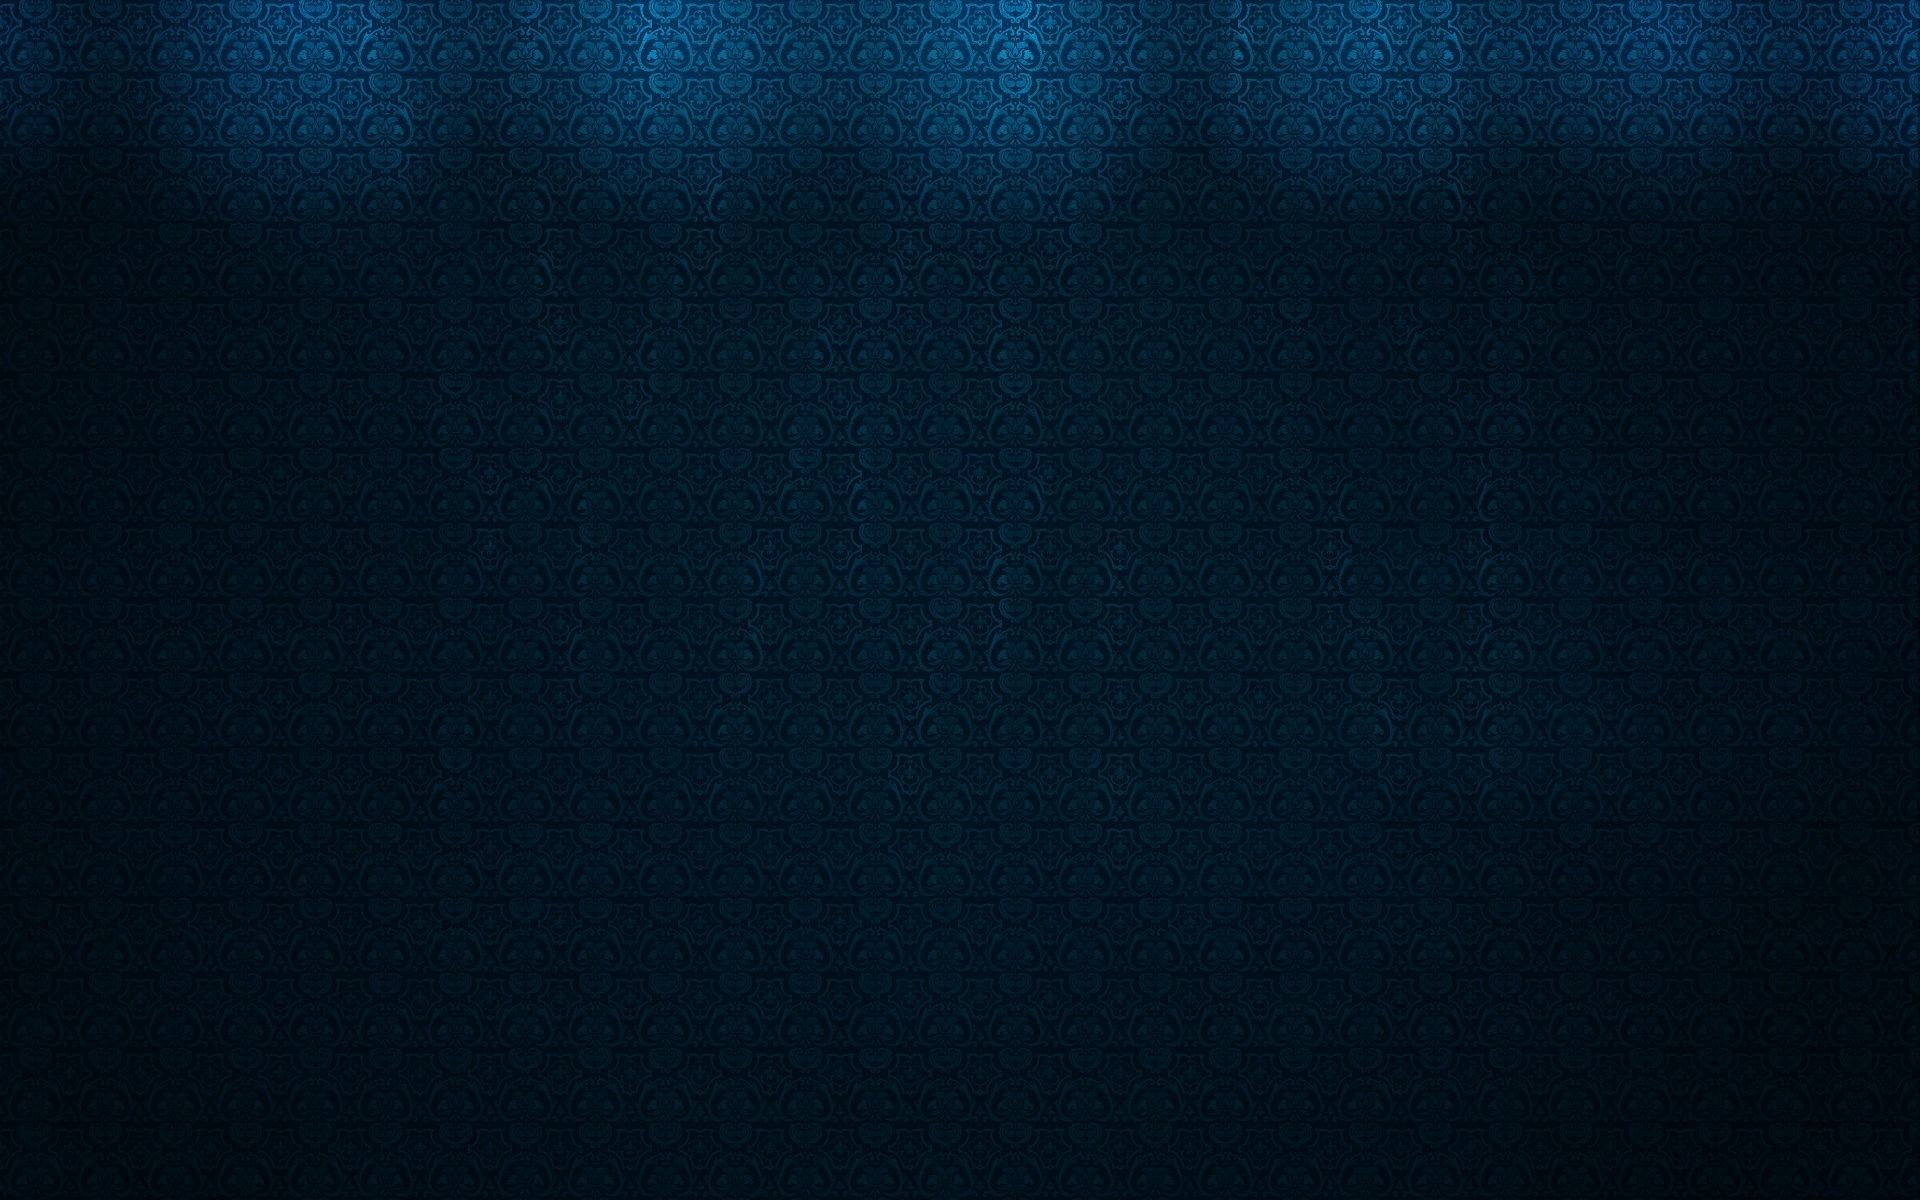 1920x1200 Navy Blue Backgrounds Wallpaper Cave #7642